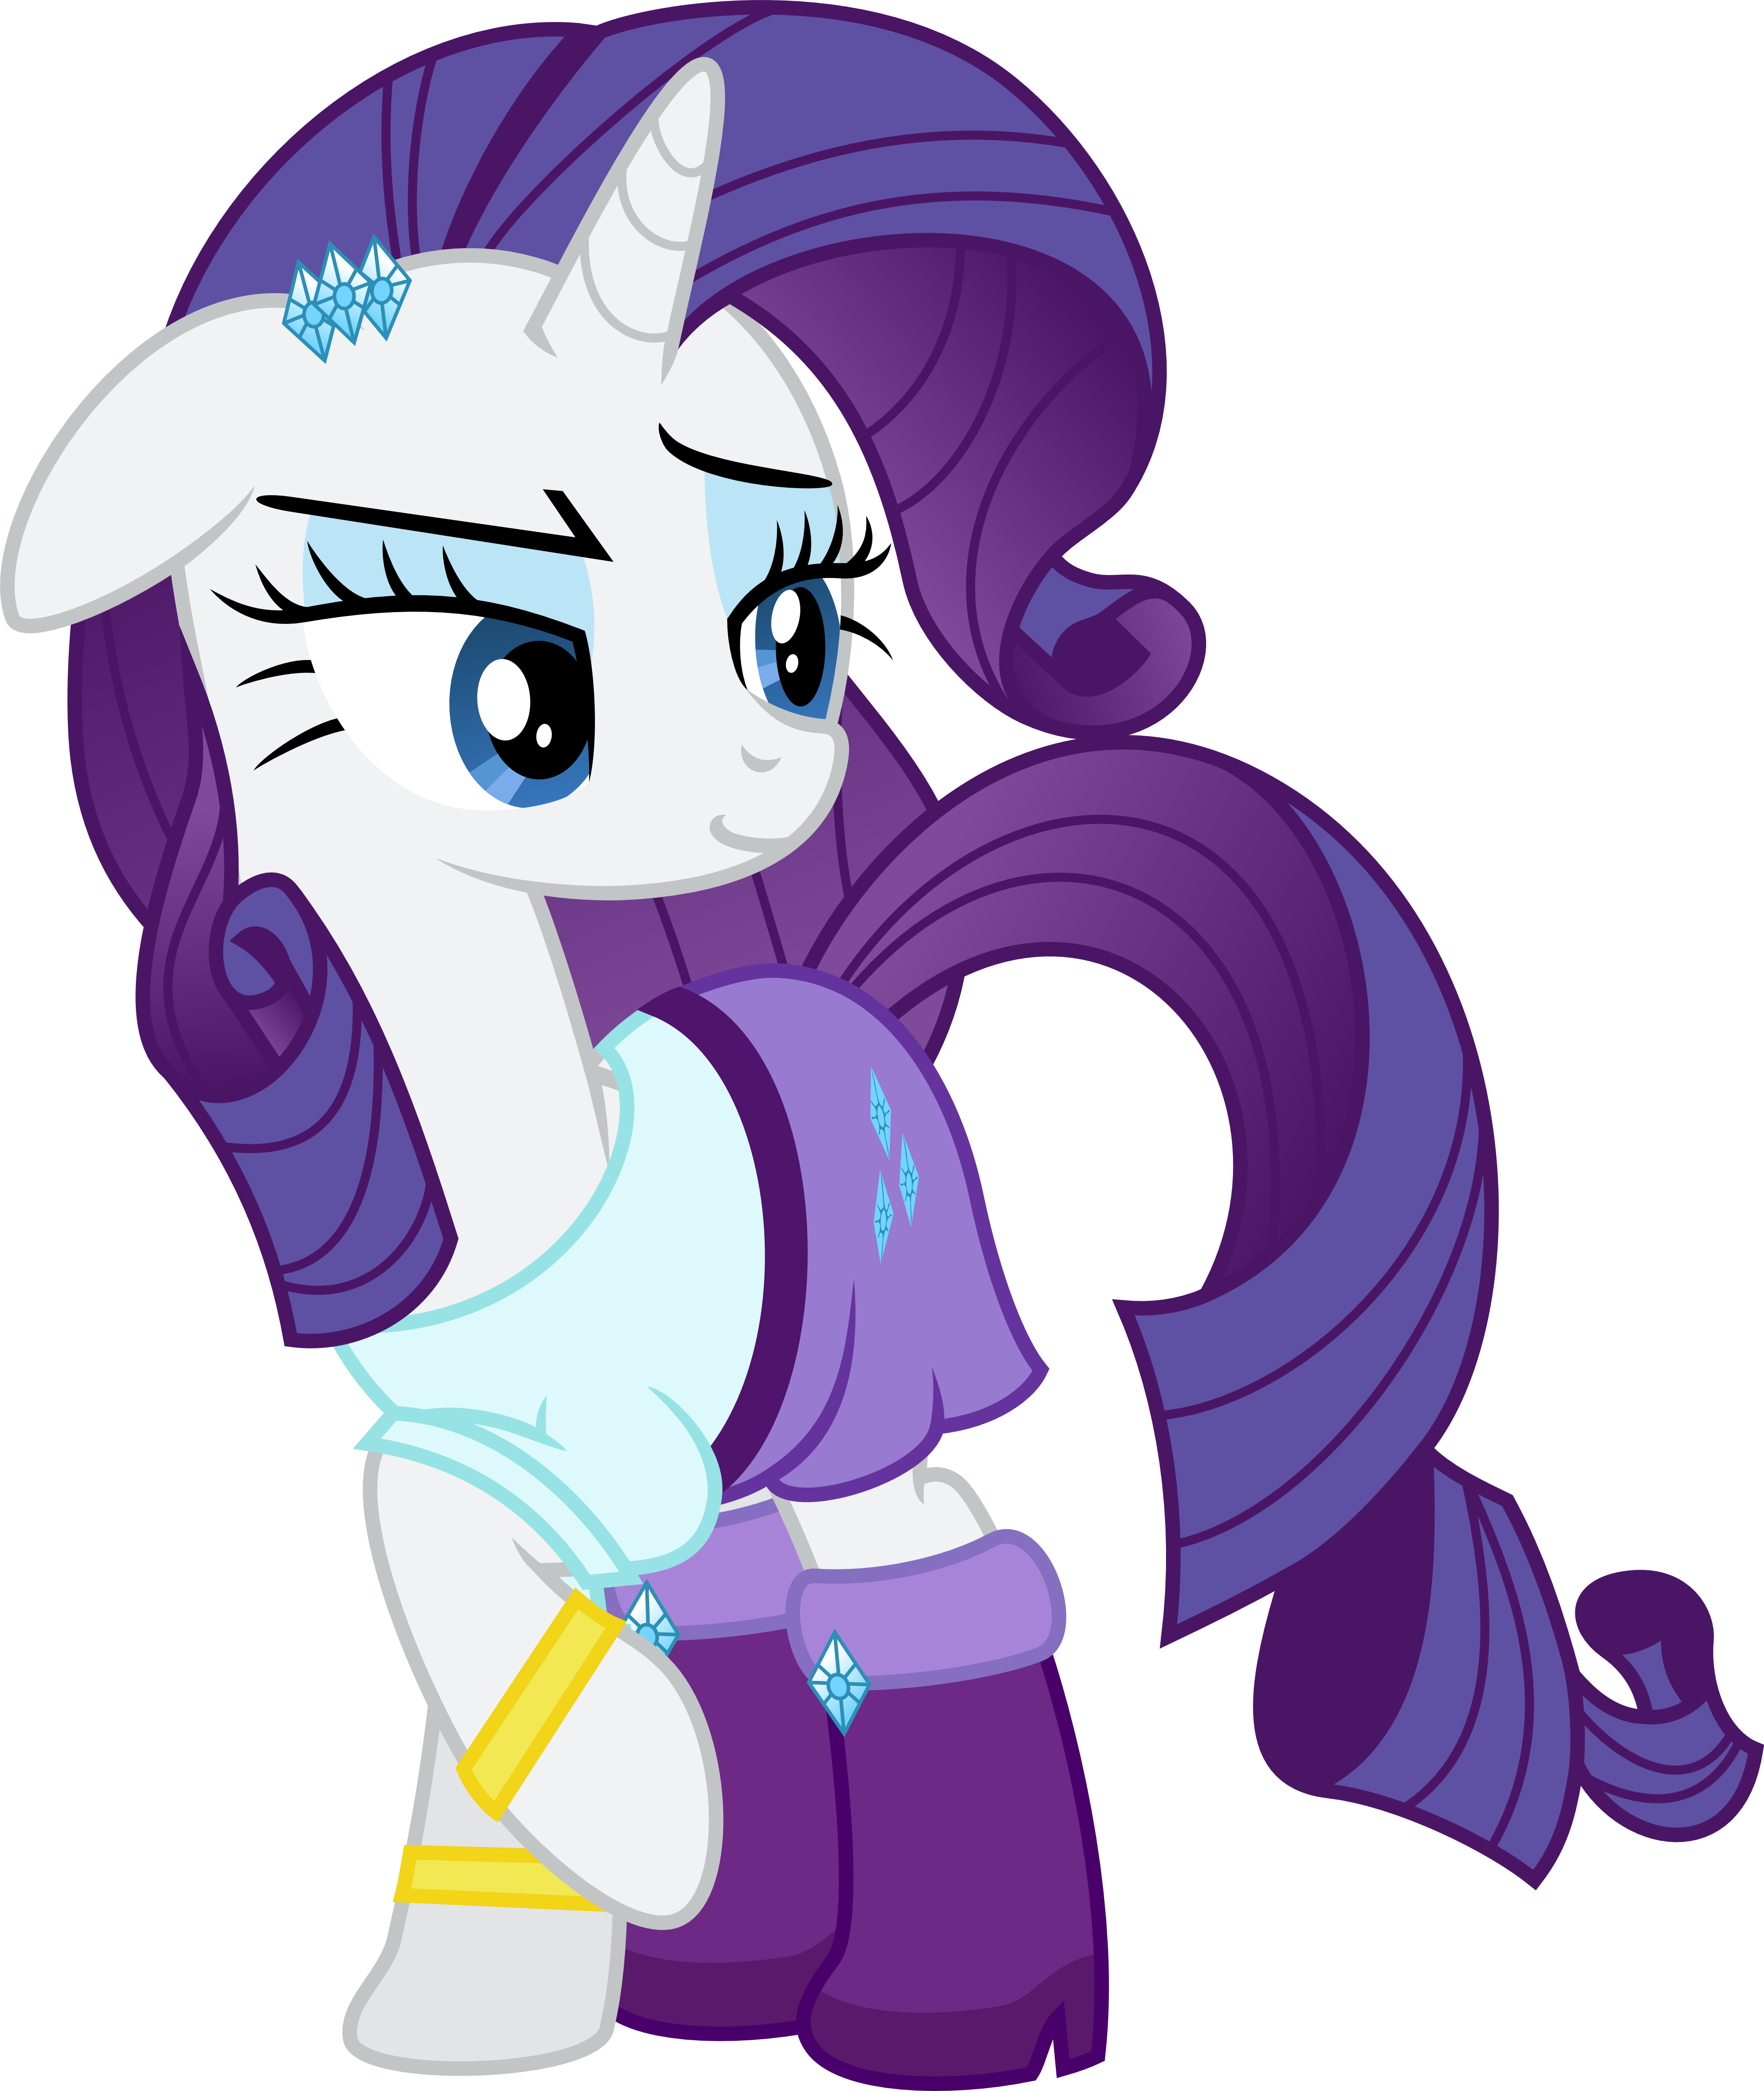 Rarity Equestria Girls Outfit by Jeatz-Axl on DeviantArt | 4000 x 4742 png 1195kB